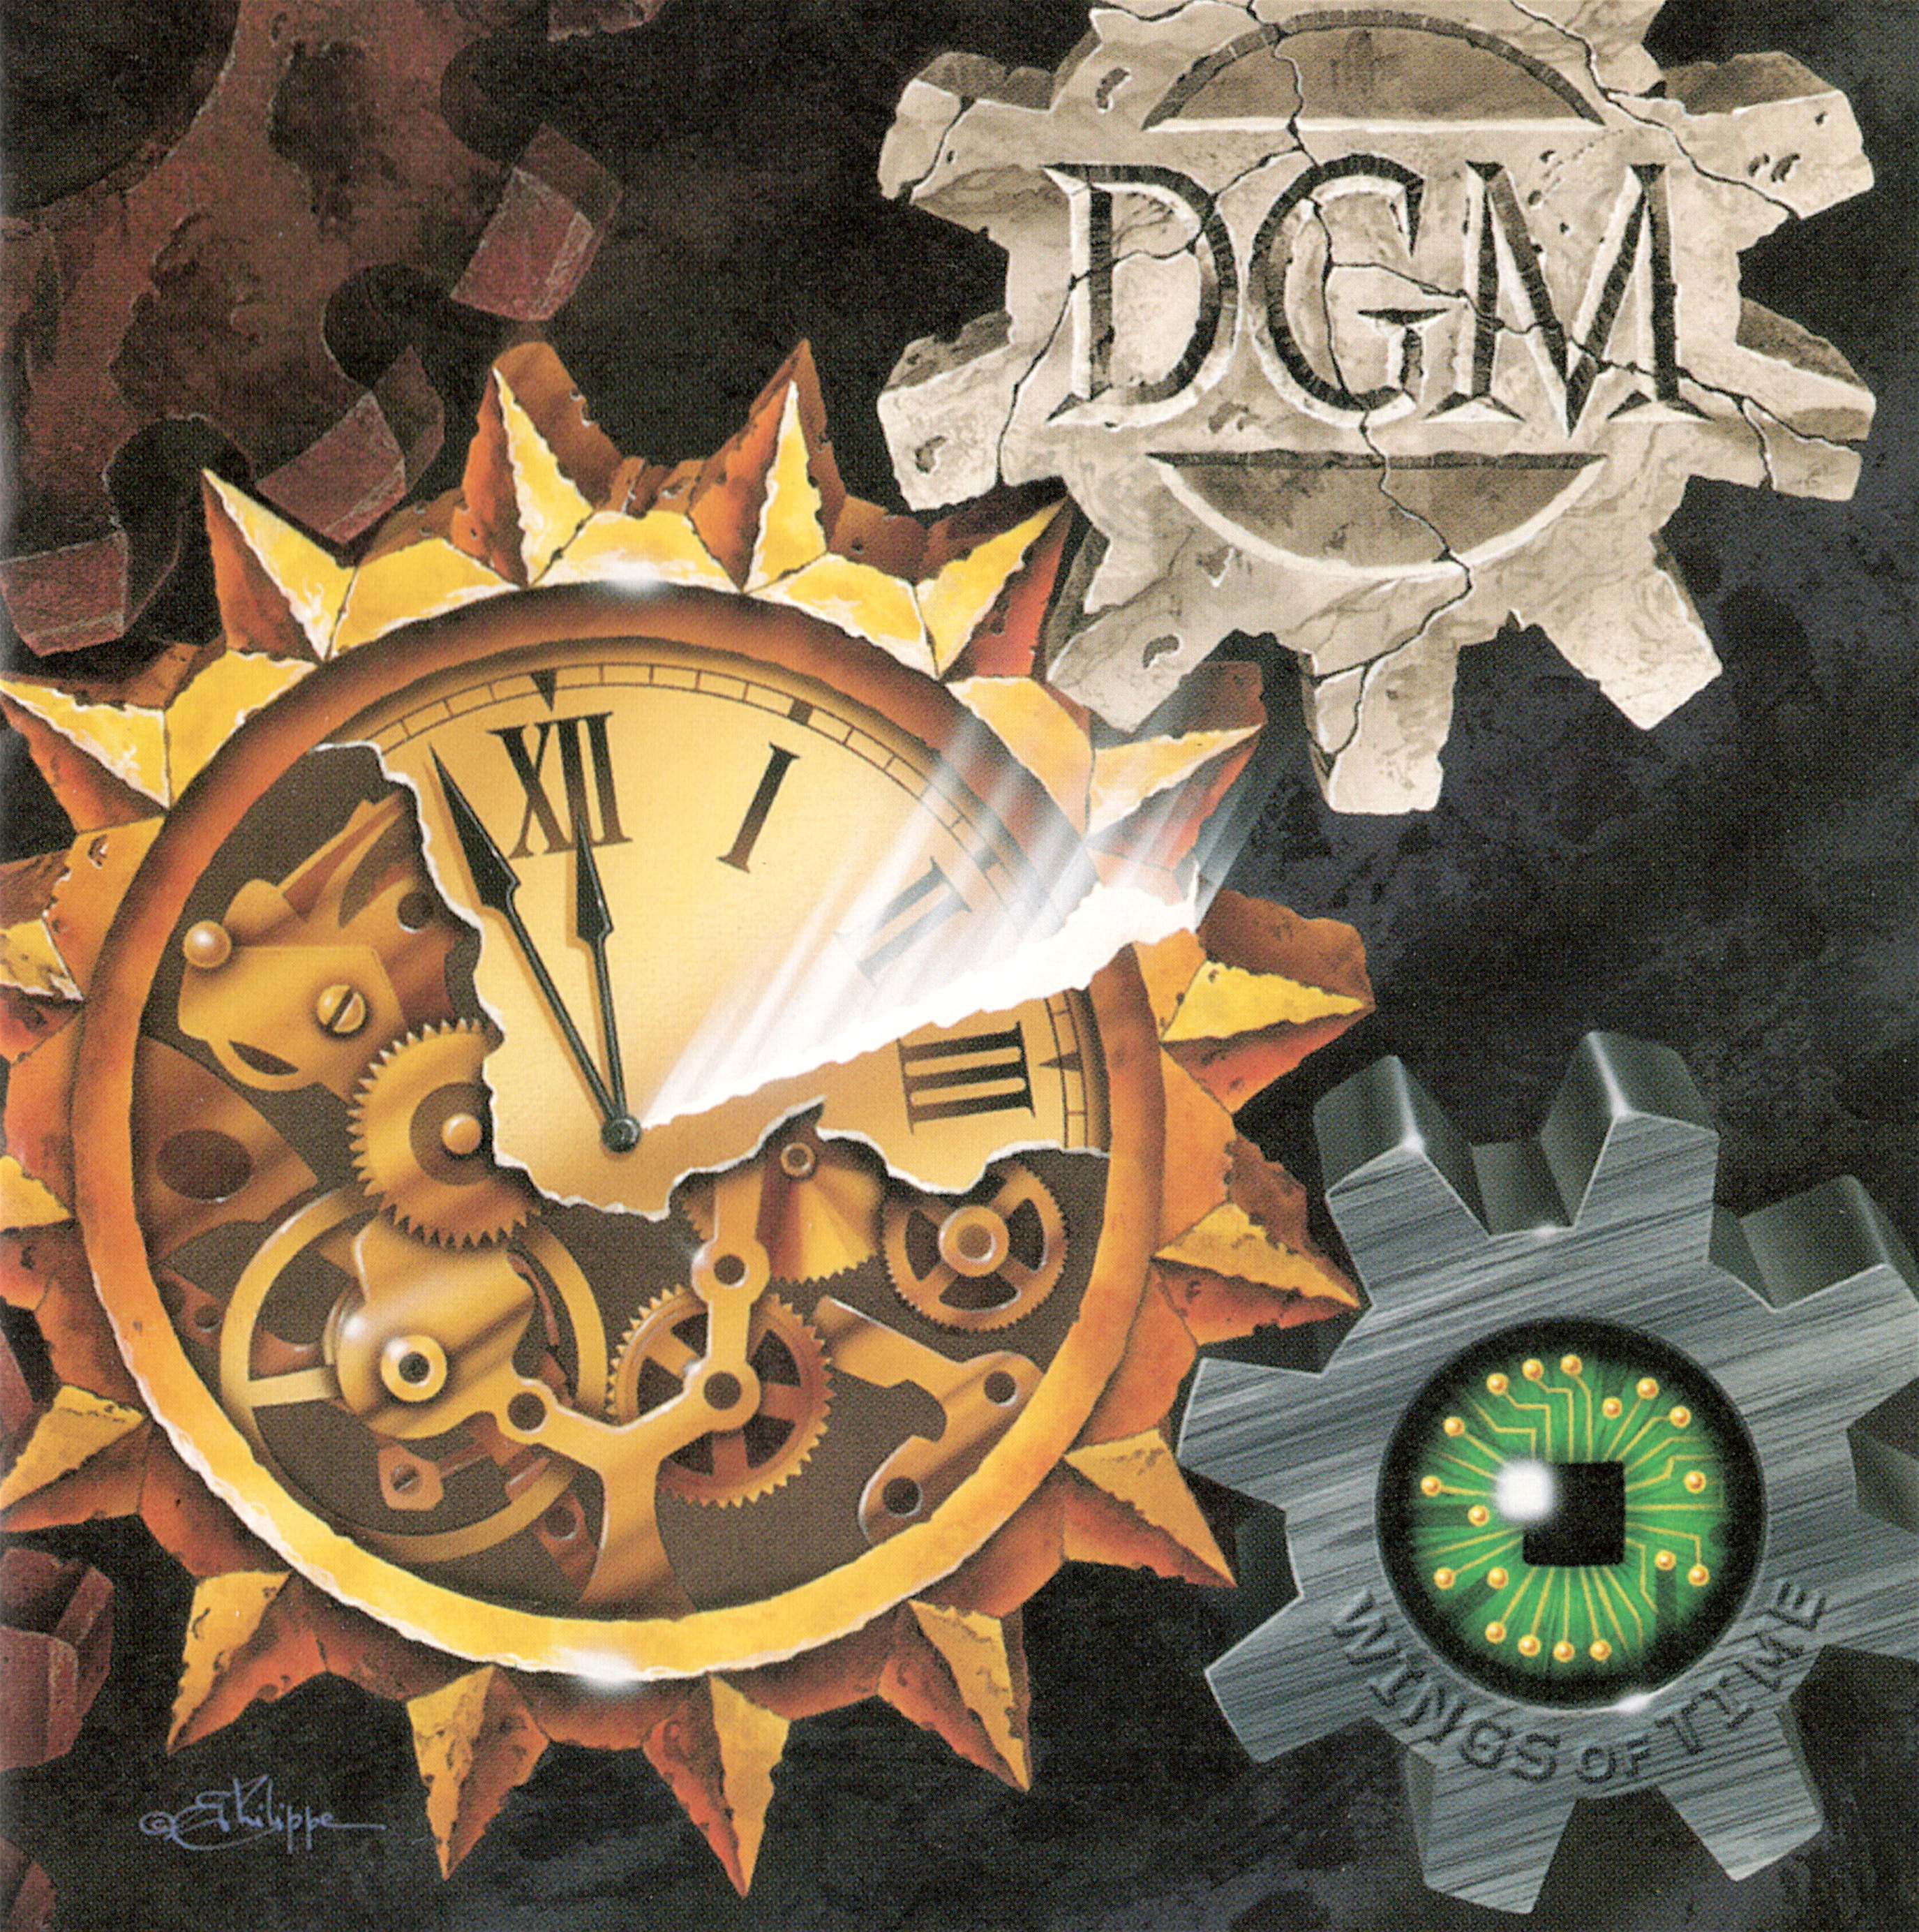 DGM - Wings of Time cover